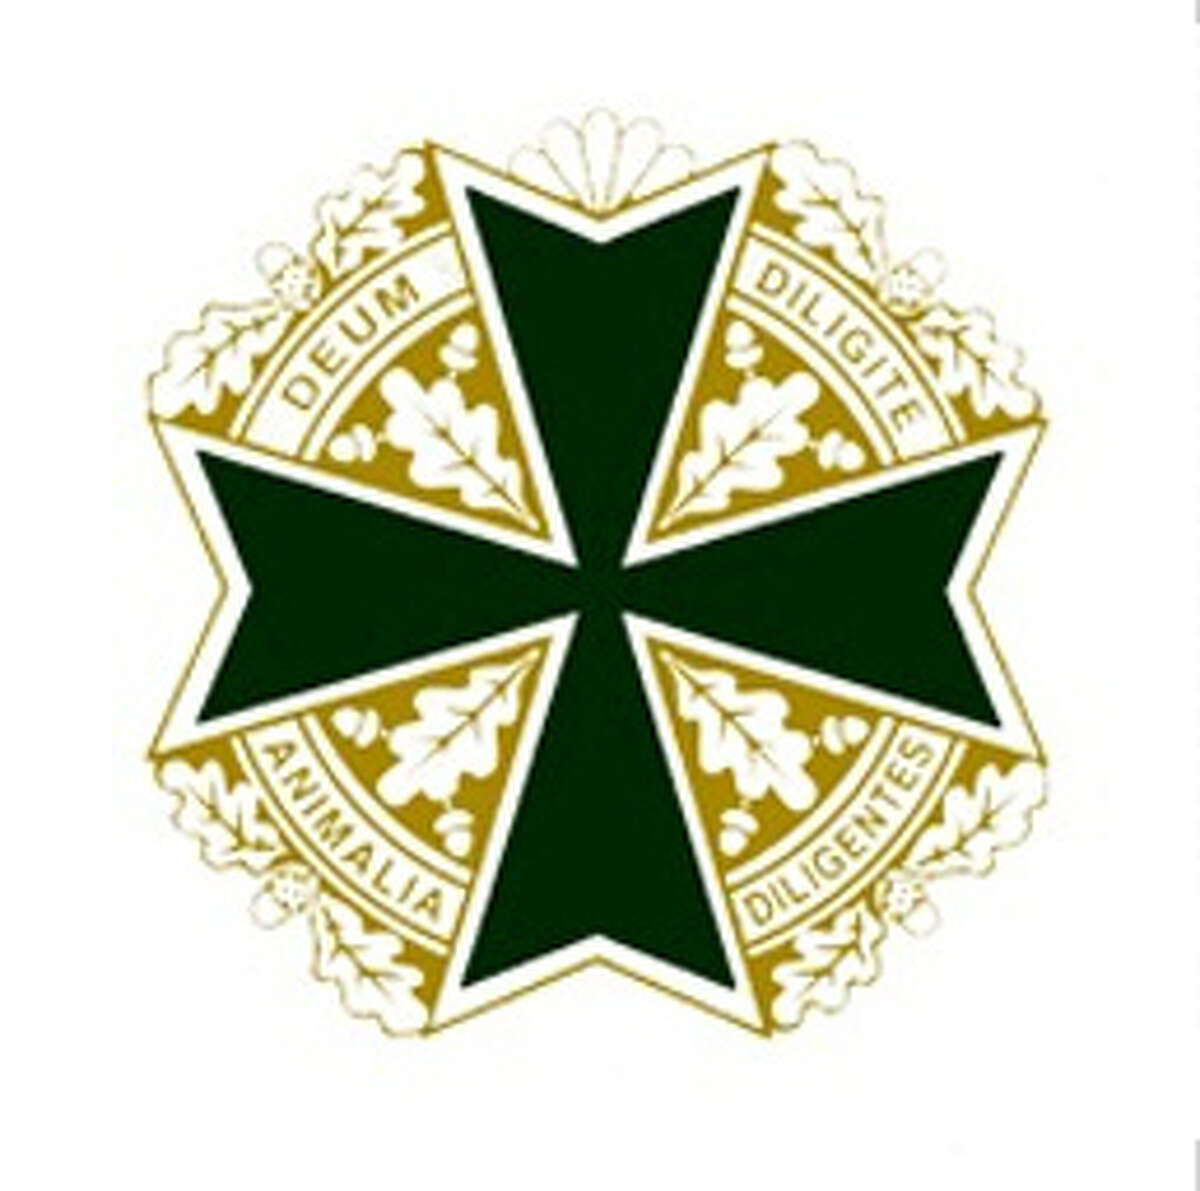 1.According to its website , the International Order of St. Hubertus says it's